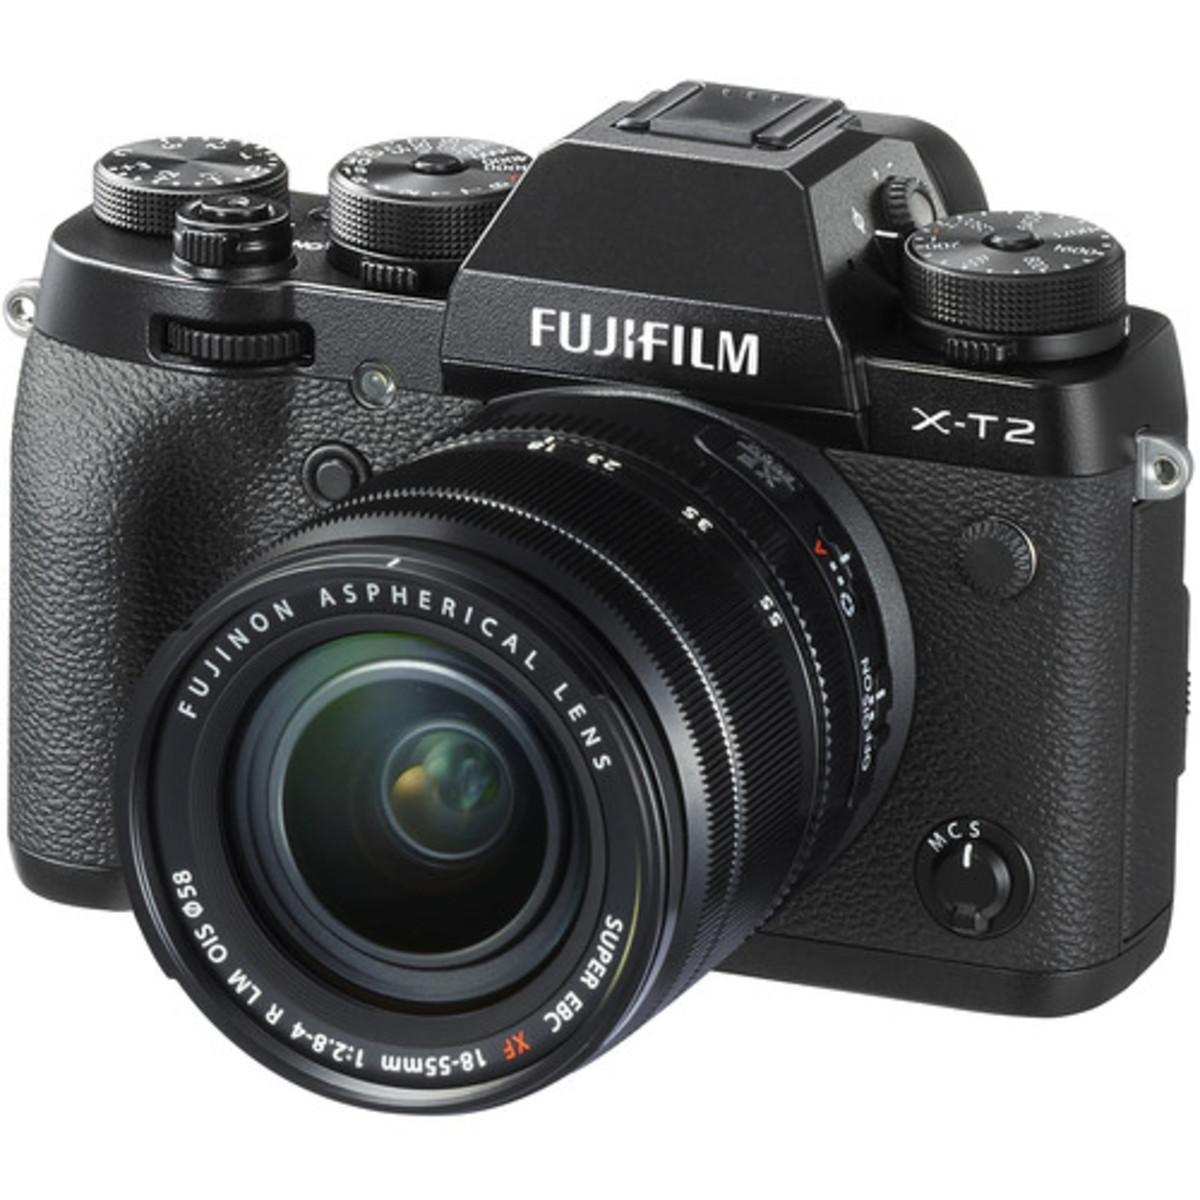 X-T2 Mirrorless Digital Camera with 18-55mm Lens - [Black] (Parallel imported)